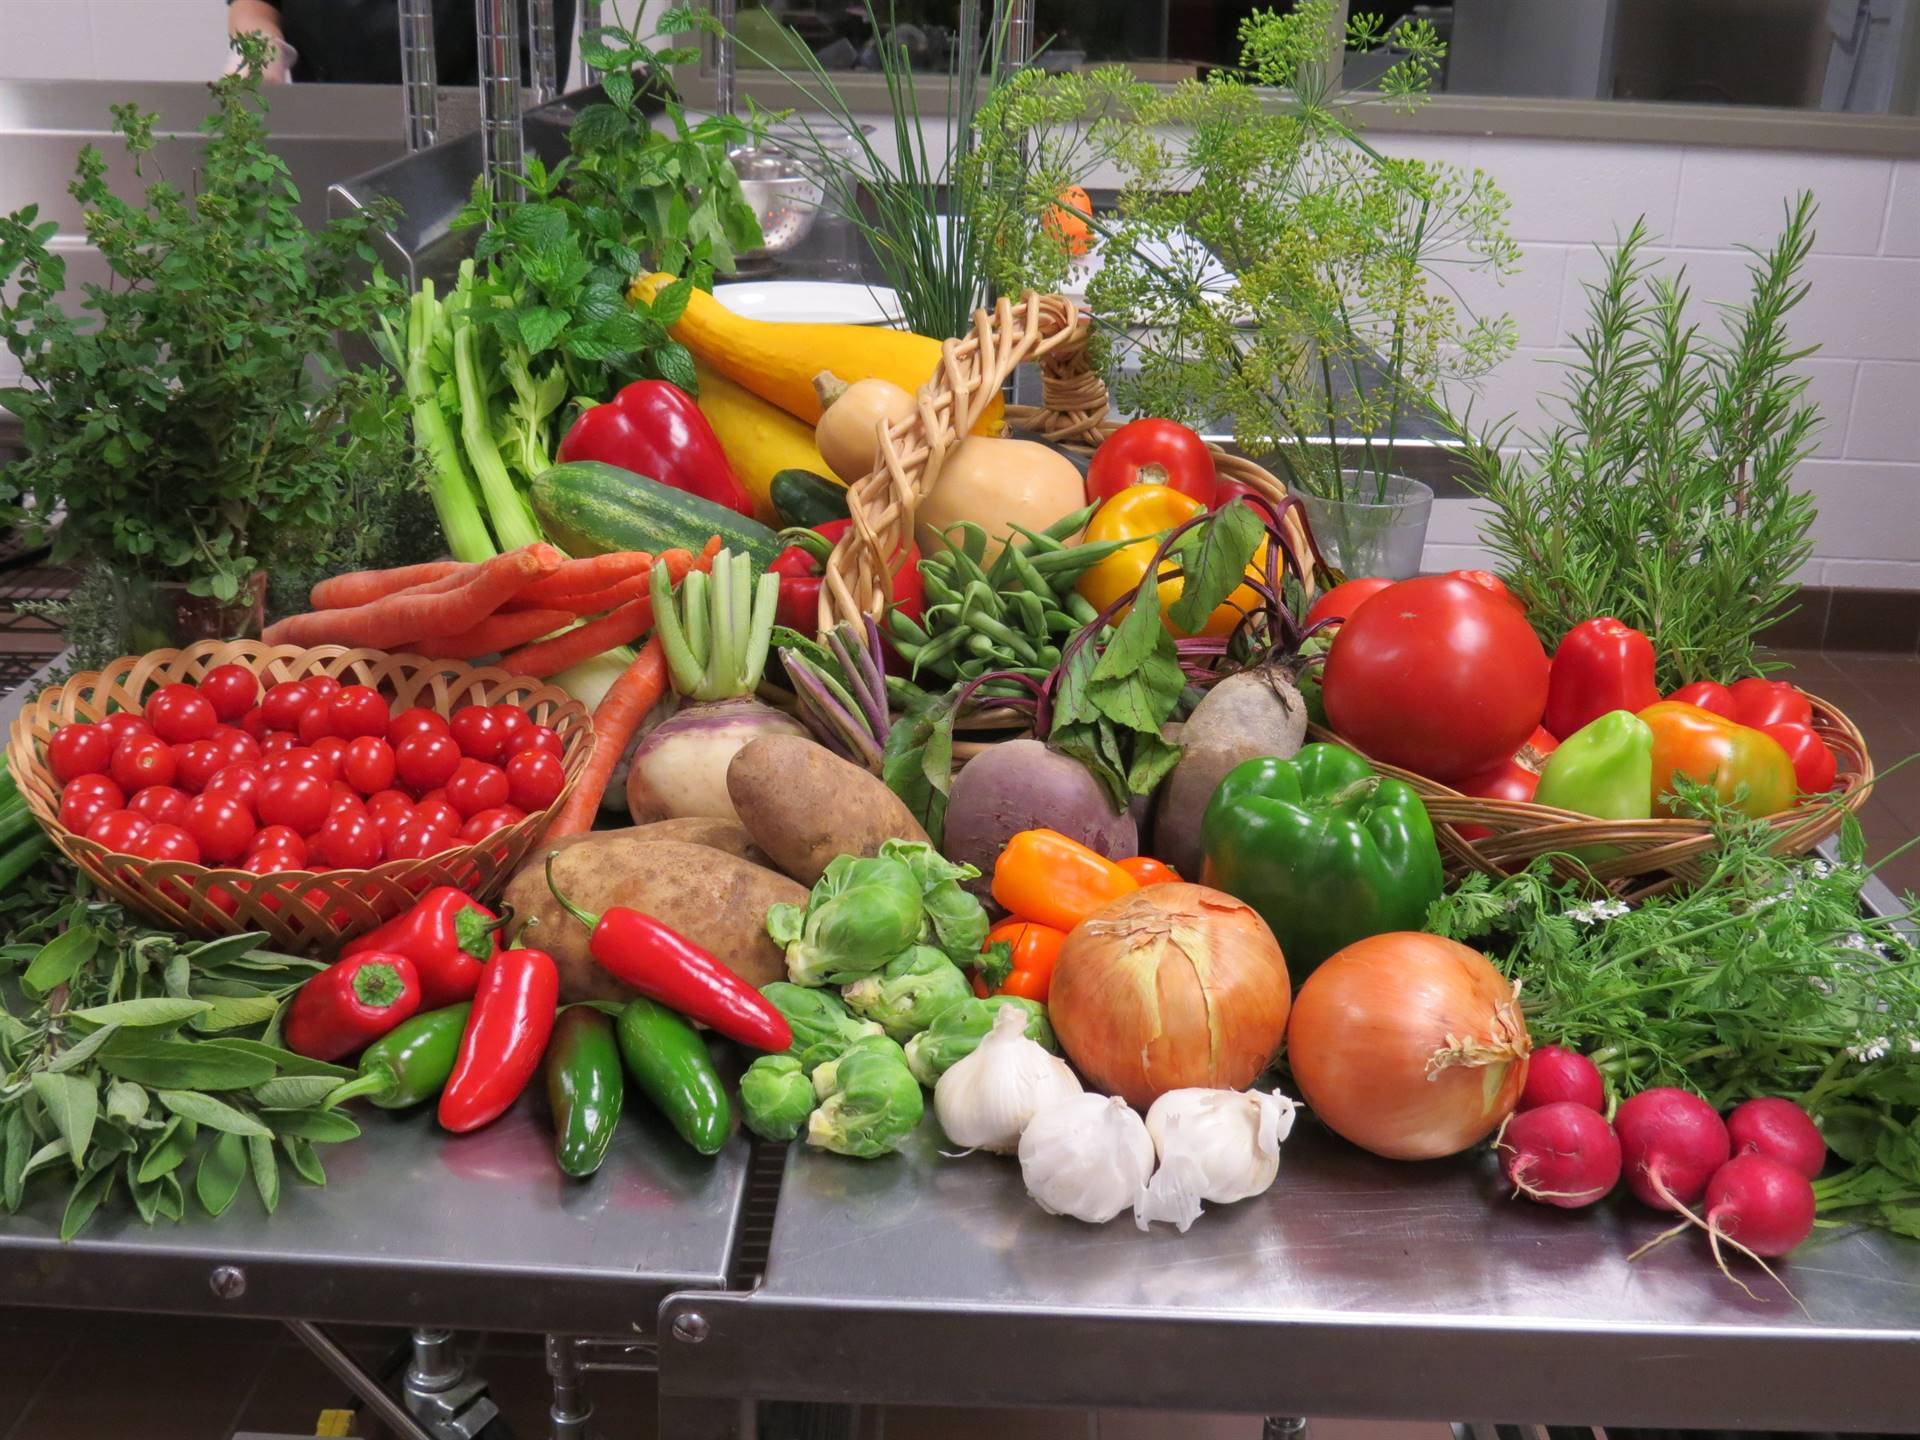 A beautiful display of colorful fall vegetables